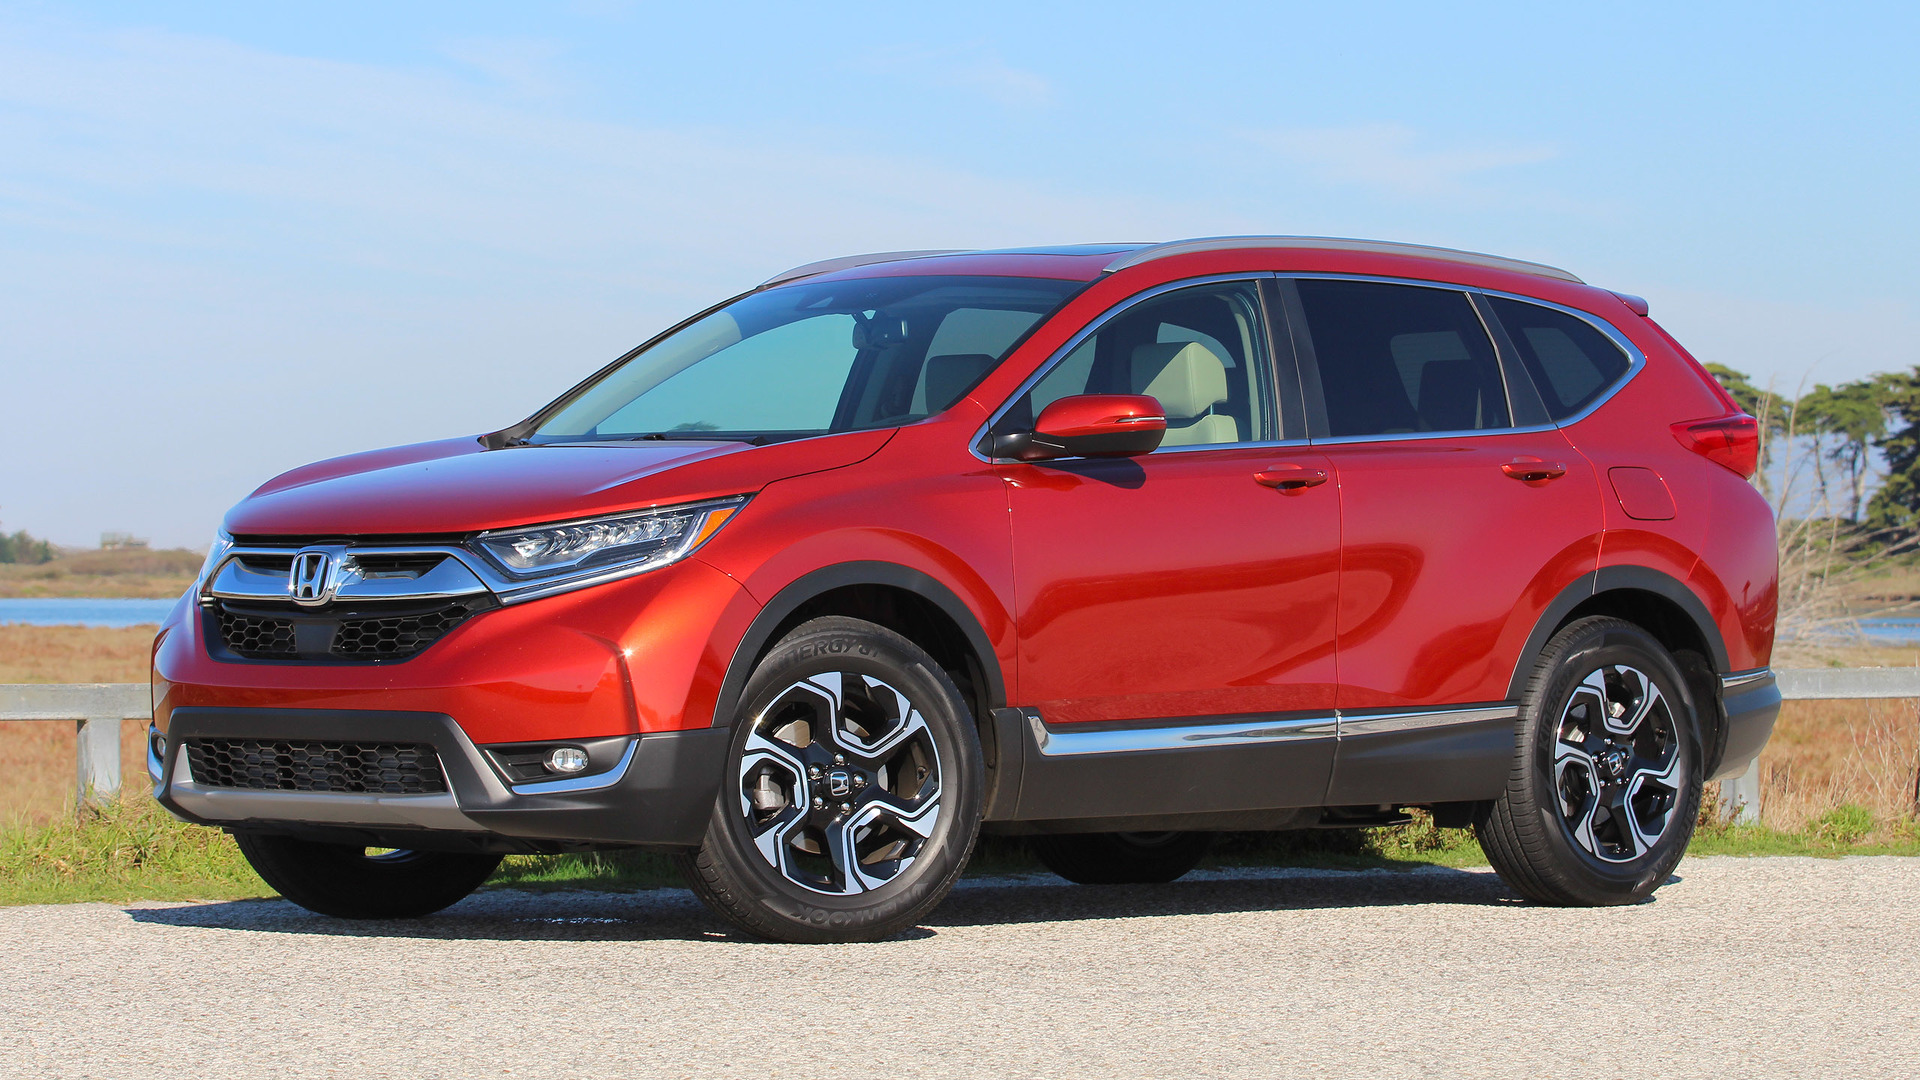 2017 honda cr v first drive just right yet again for Honda crv 2017 vs 2018